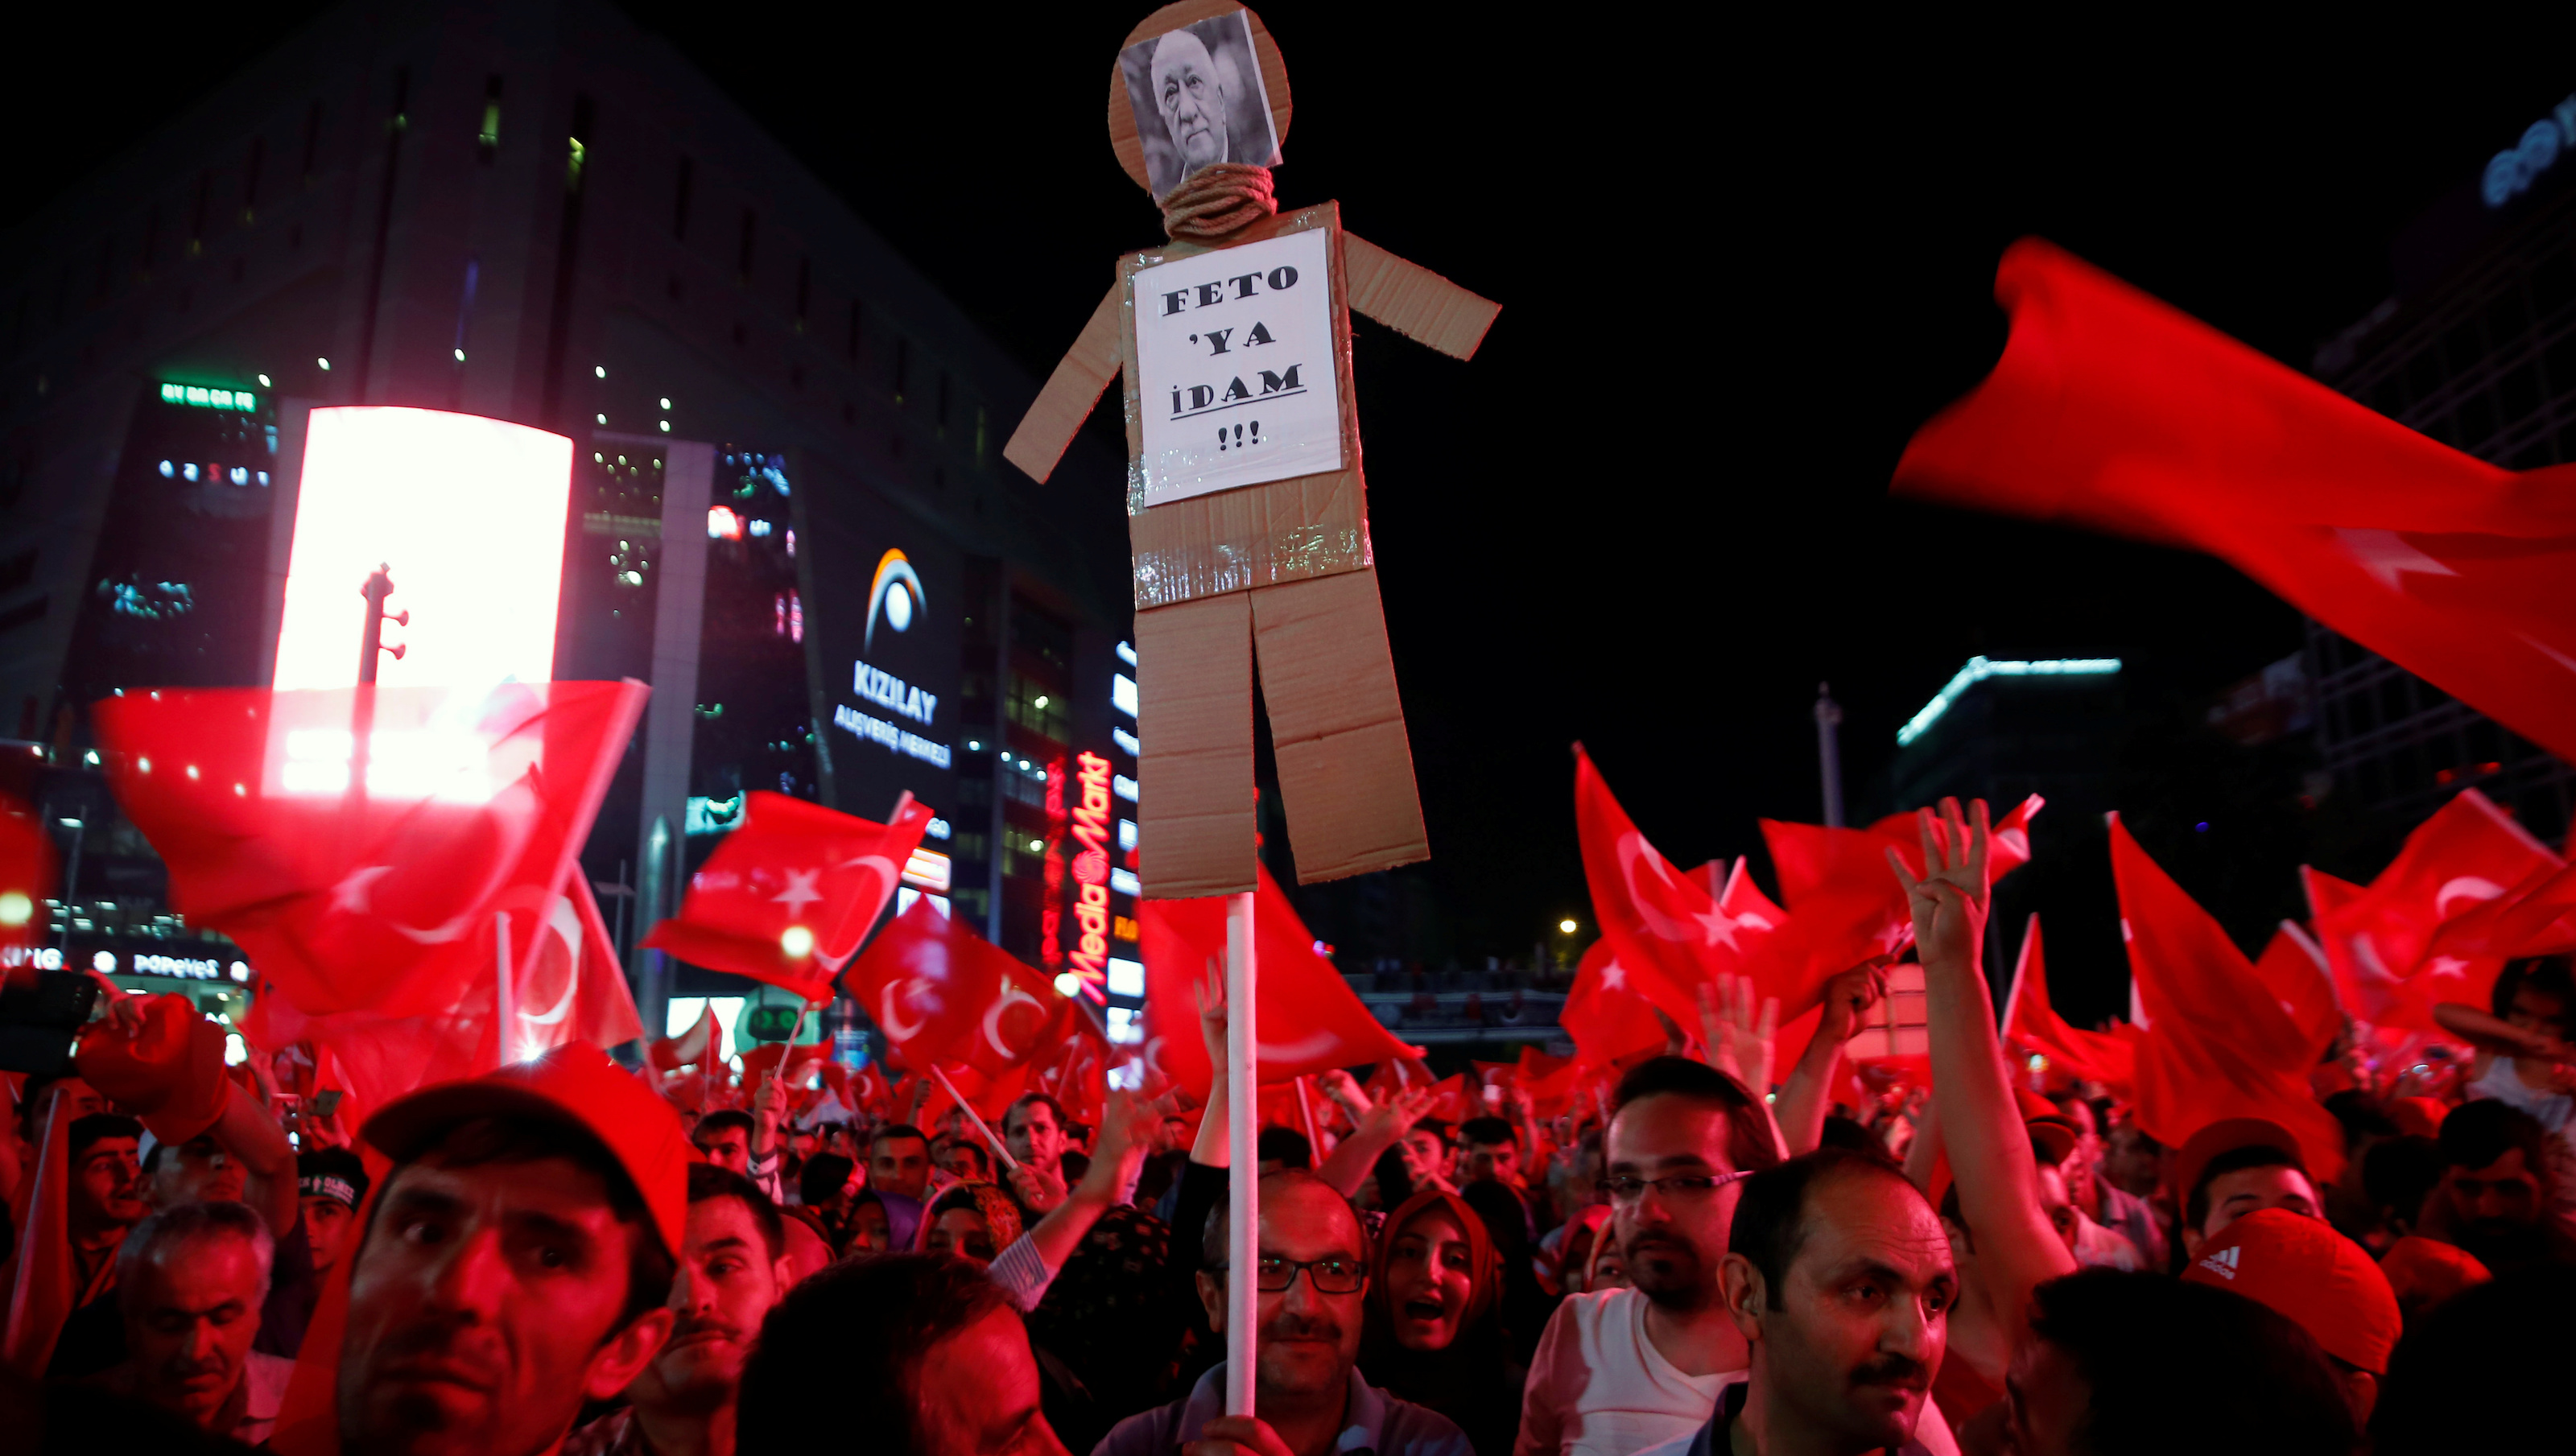 """Supporters of Turkish President Tayyip Erdogan hold an effigy of U.S.-based cleric Fethullah Gulen during a pro-government demonstration in Ankara ,Turkey , July 17, 2016. The sign reads """"execution to feto(an insulting nickname for Gulen)"""". REUTERS/Baz Ratner - RTSIFL4"""